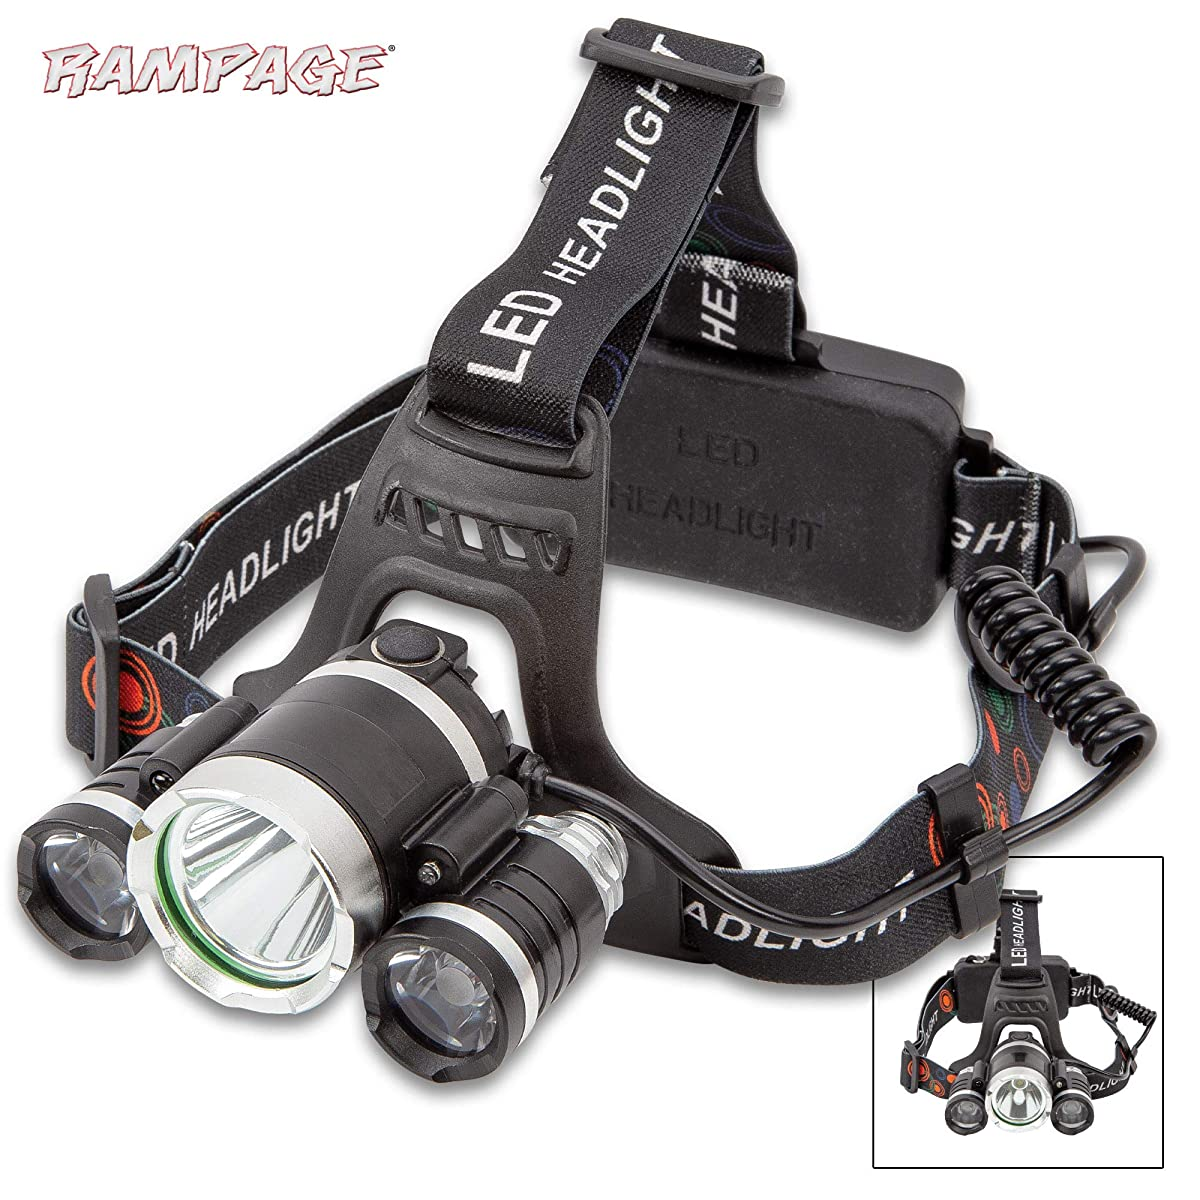 K EXCLUSIVE Rampage Three-Mode LED Water-Resistant Headlamp - Three CREE Lights, Tough Housing, Adjustable Elastic Head Strap, Included Charger